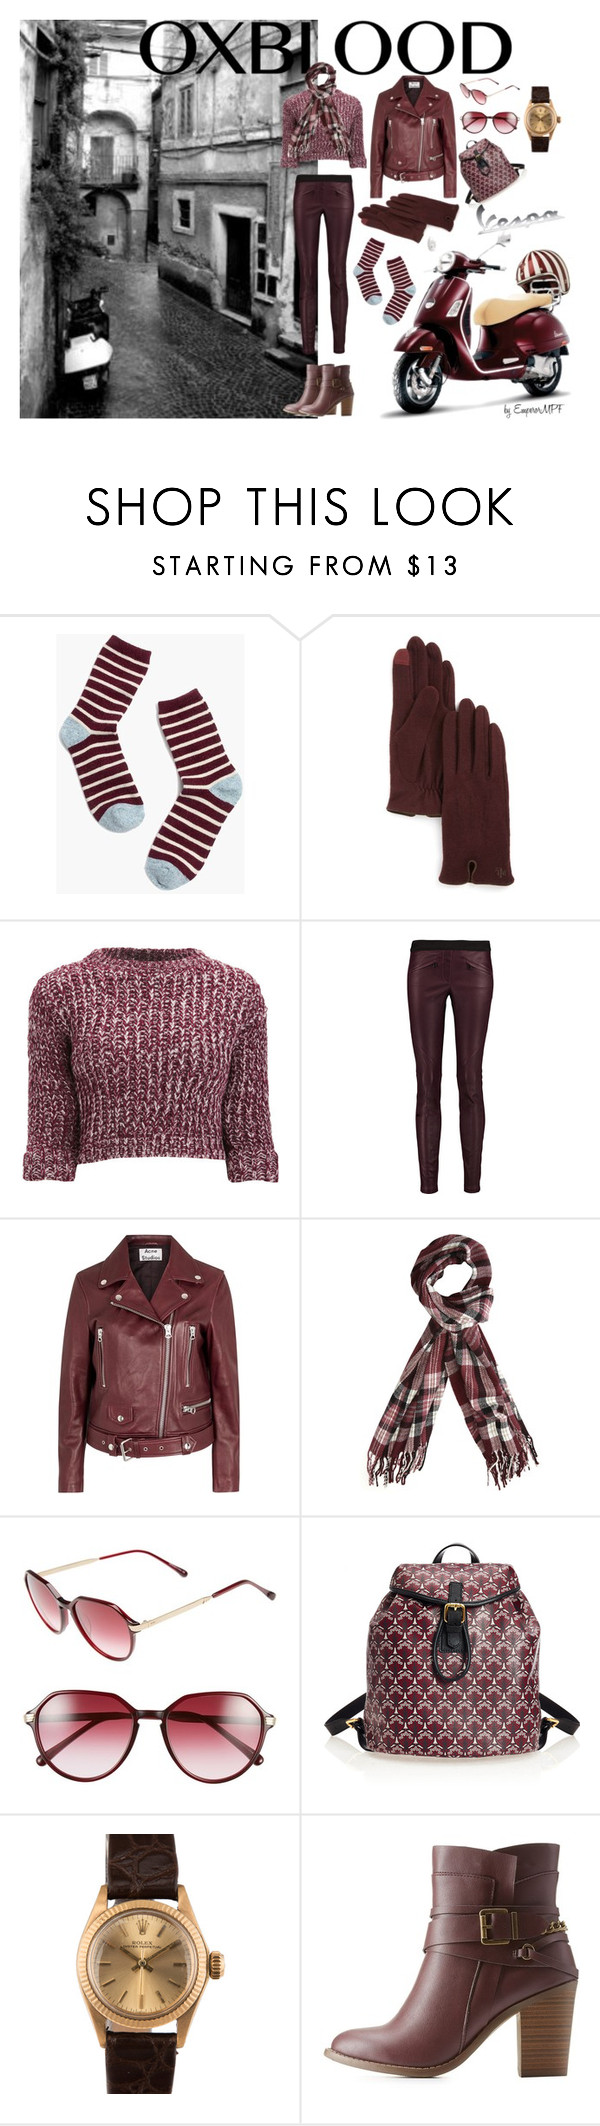 """Oxblood Vespa"" by emperormpf ❤ liked on Polyvore featuring Madewell, Ralph Lauren, Girls On Film, Belstaff, Ateliers Ruby, Acne Studios, Dorothy Perkins, Steven Alan, Liberty and Rolex"